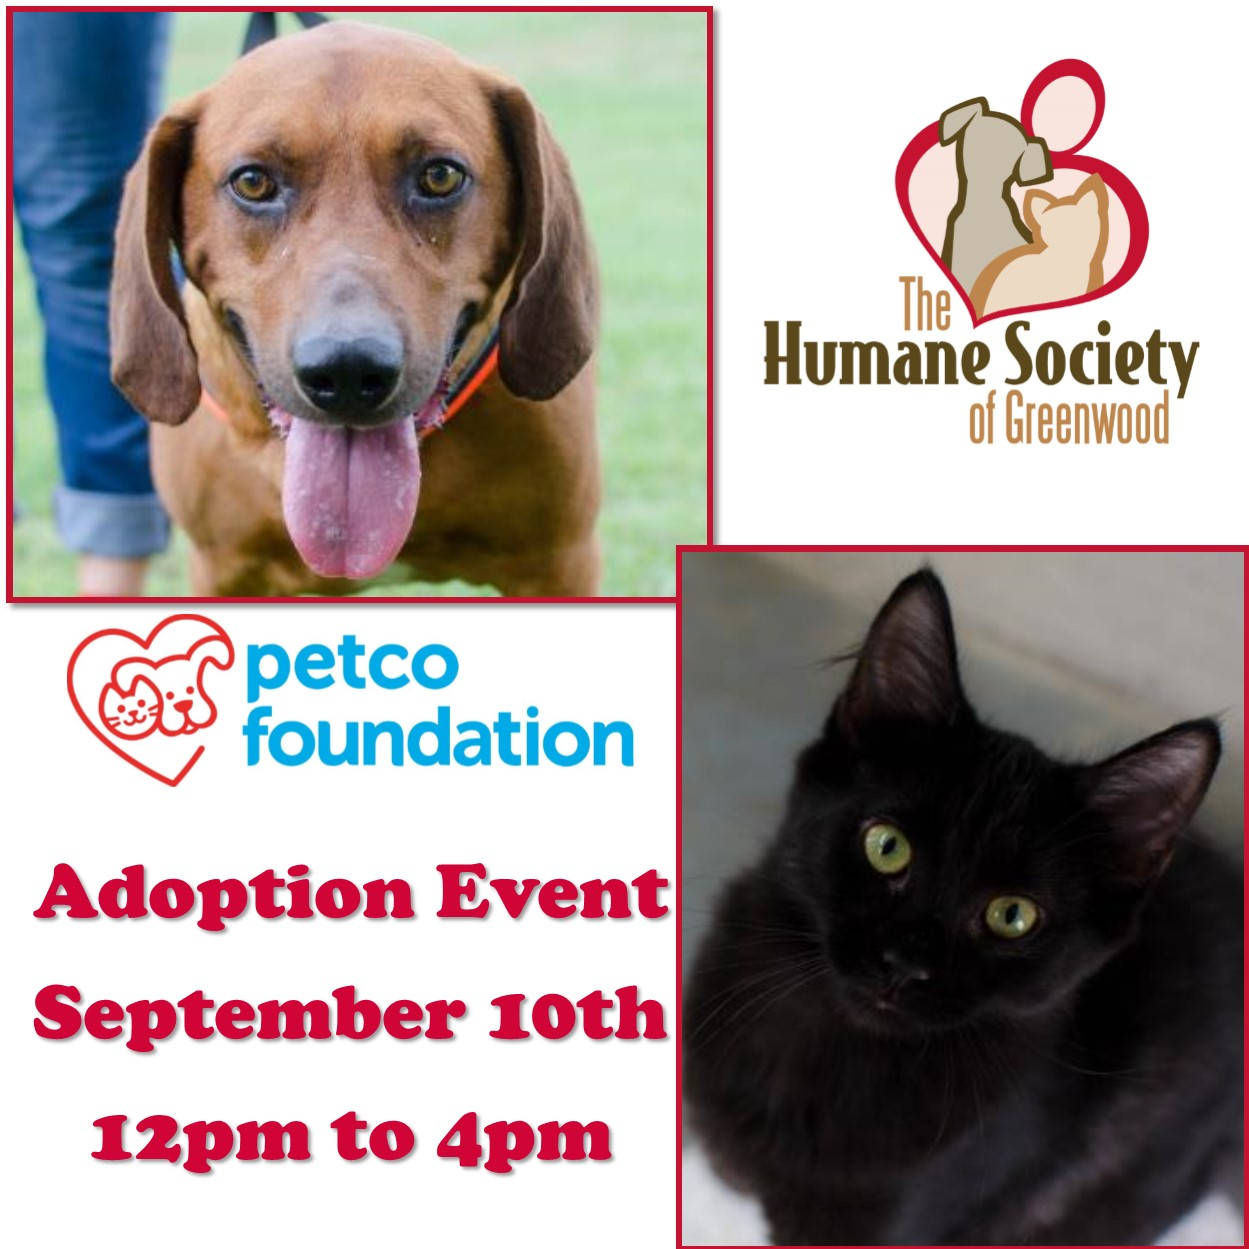 Adoptable Dogs and Cats at Petco Saturday, September 10th, 12pm to